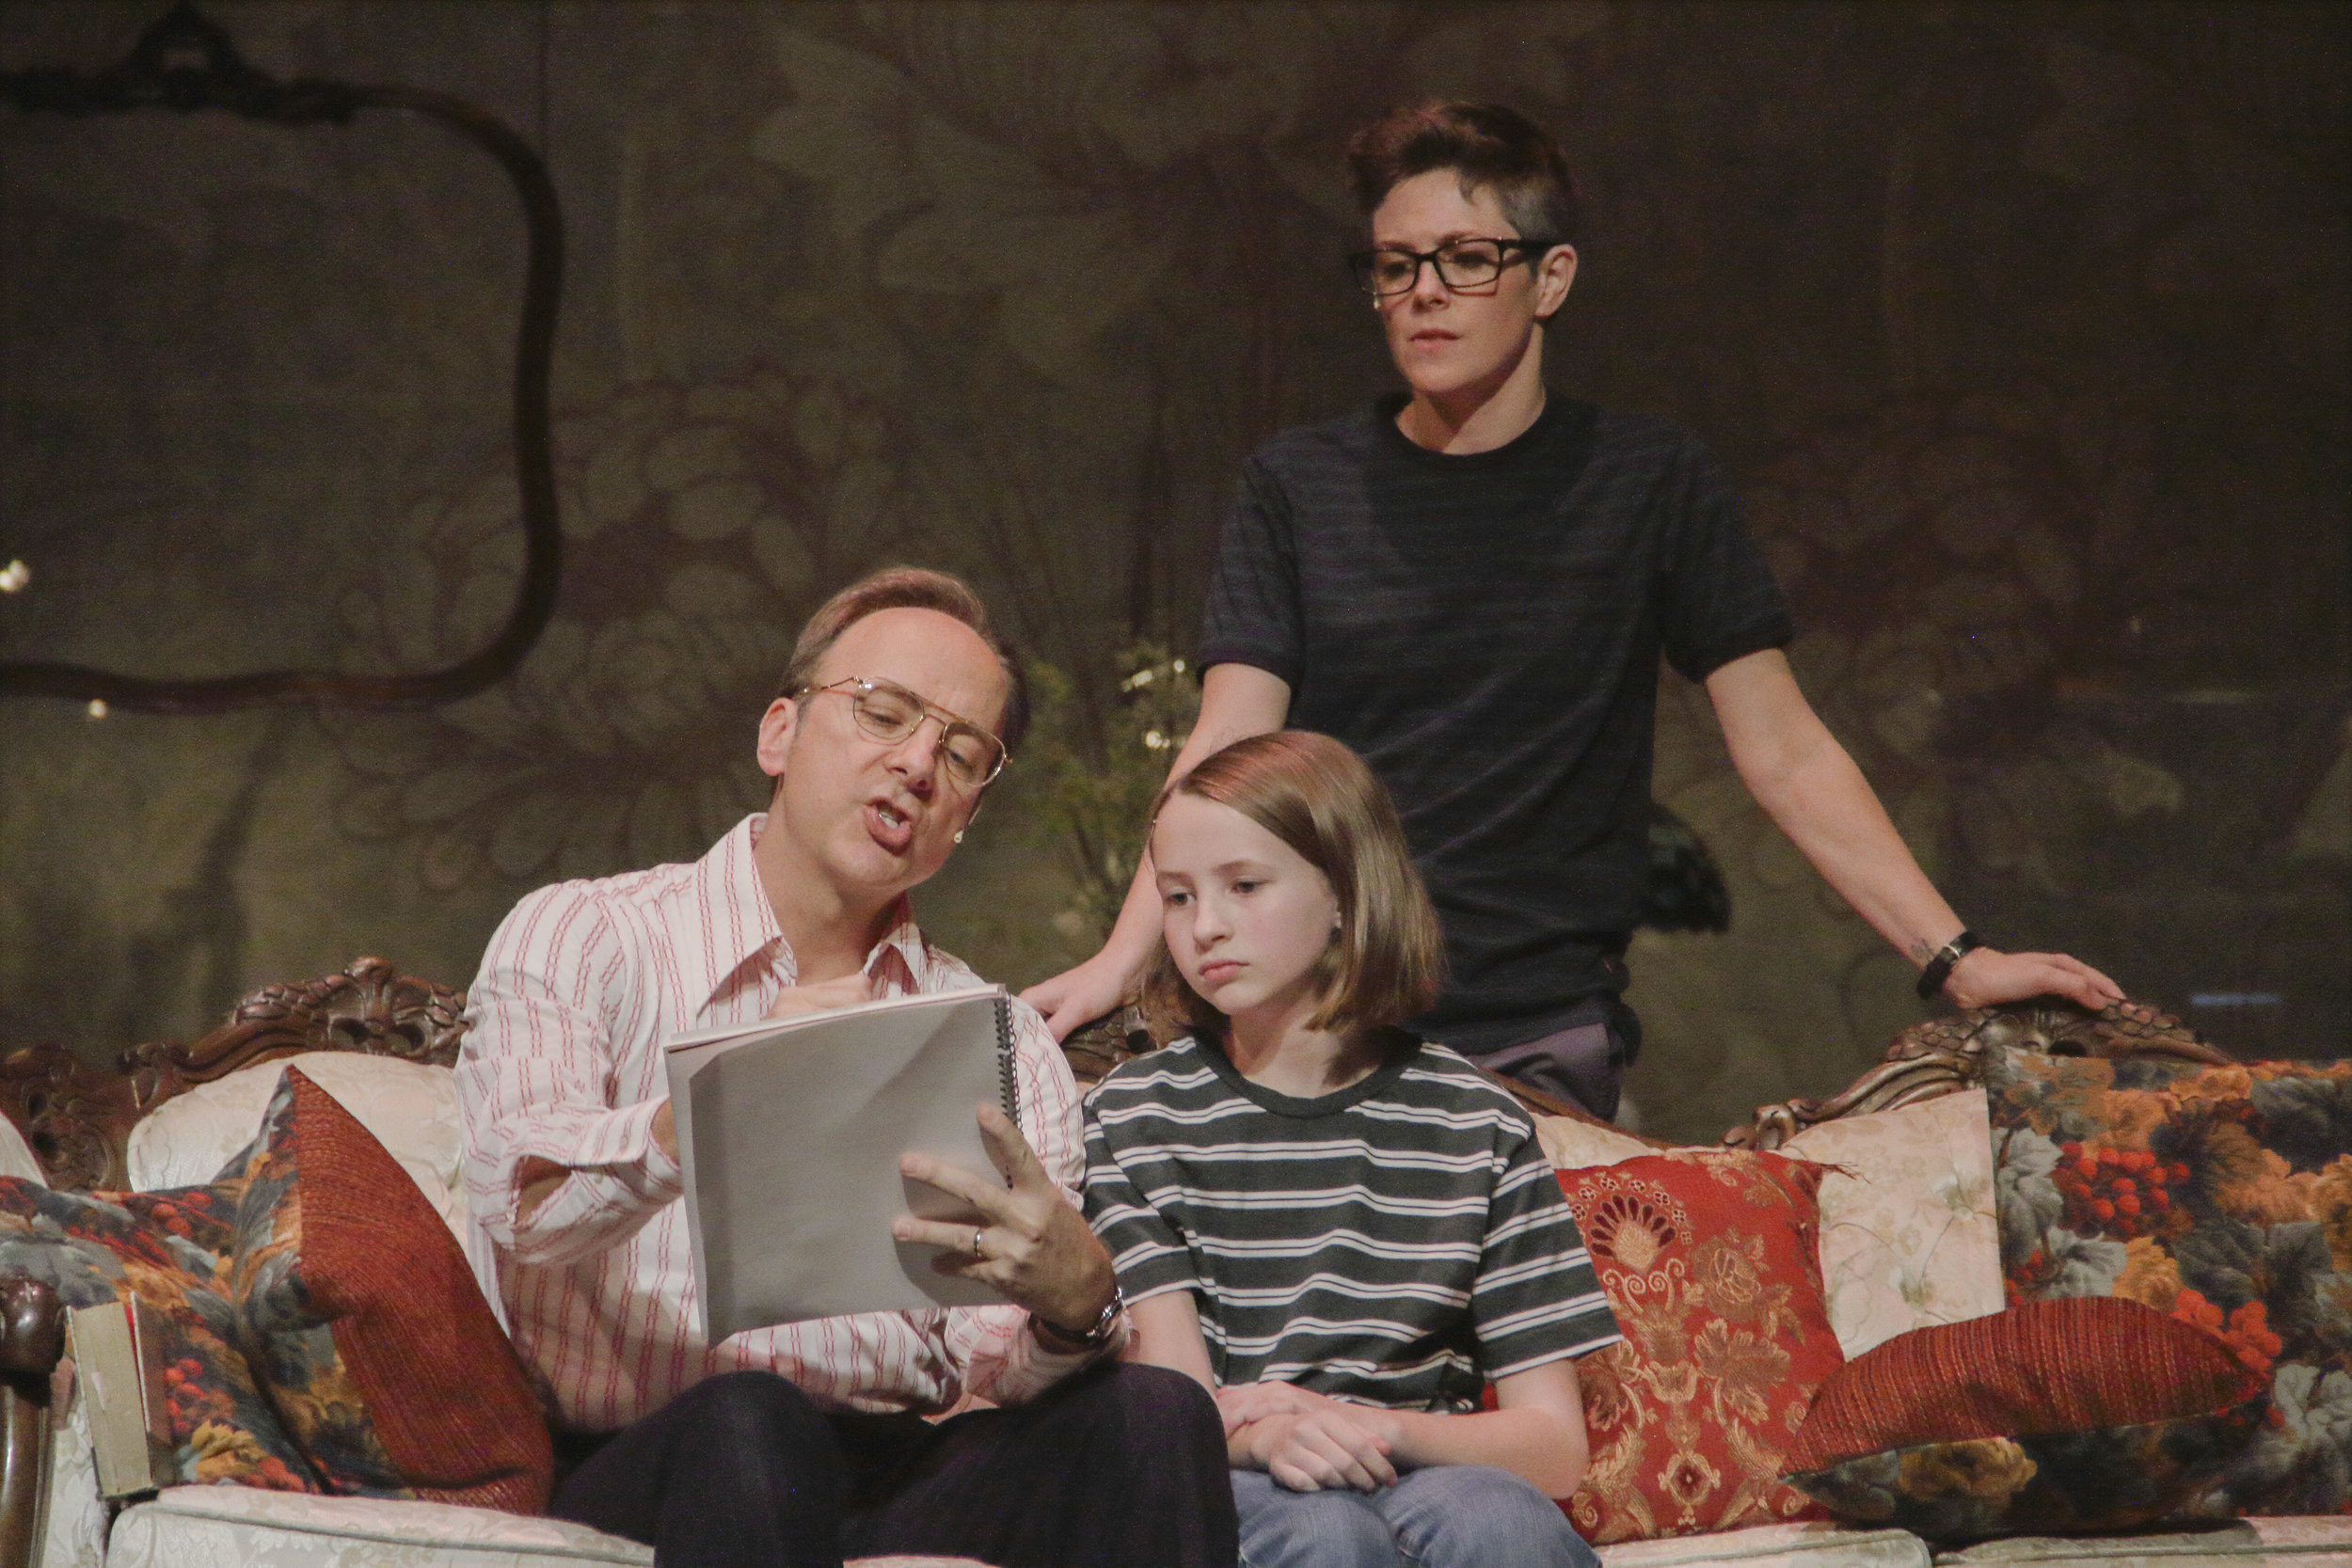 FunHome closeups 103  _ EDITED.jpg